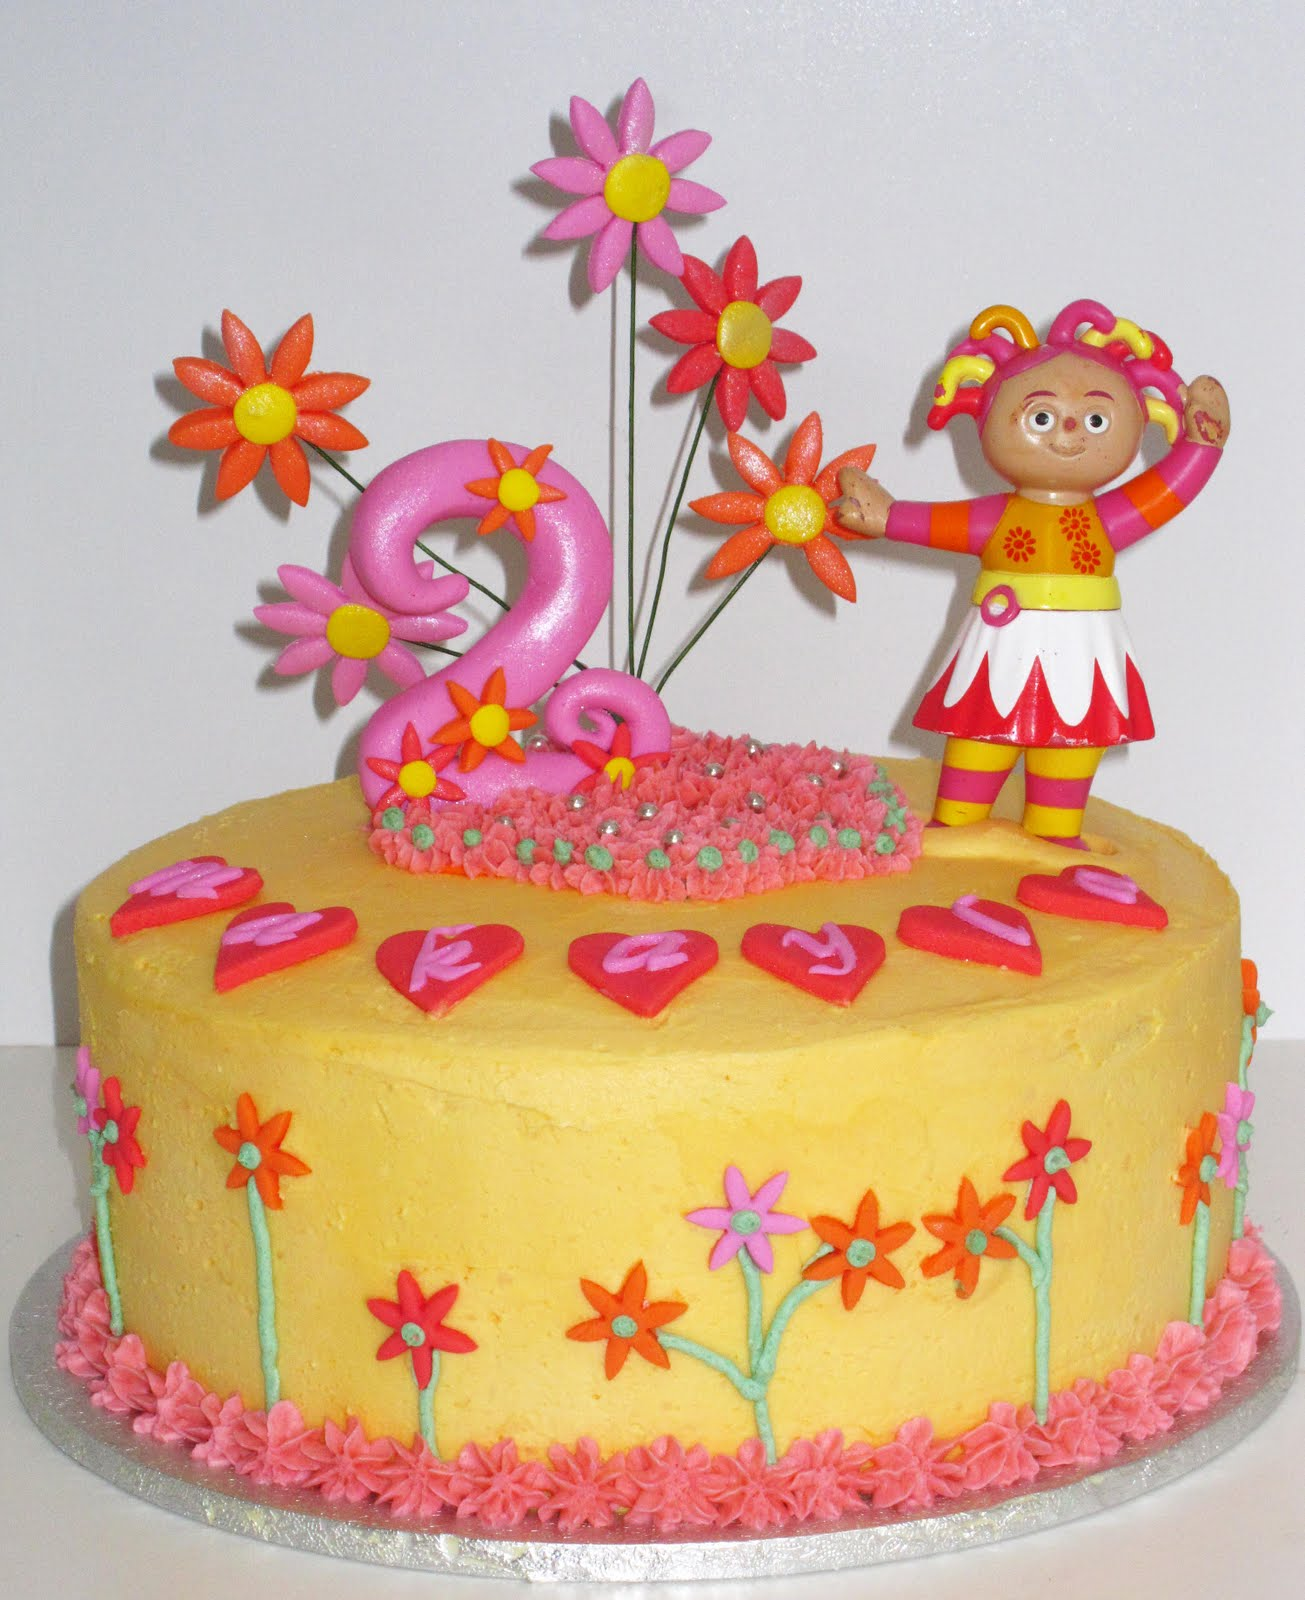 Upsy Daisy Cake Decoration : CRAVINGS cakes cupcakes and cookies: Upsy Daisy Cake